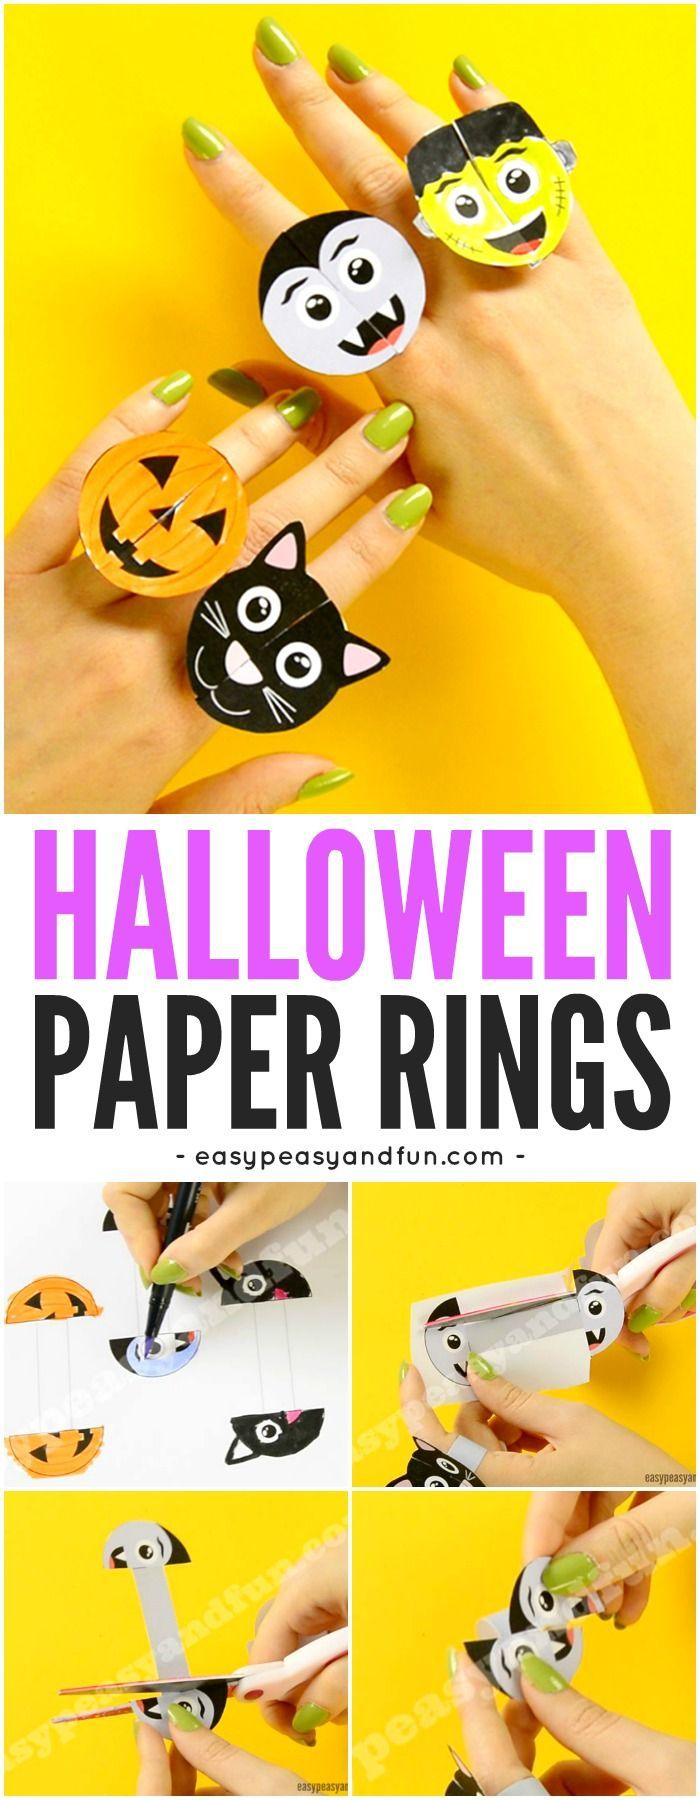 fun kids crafts 2067 best paper crafts images on school 2067